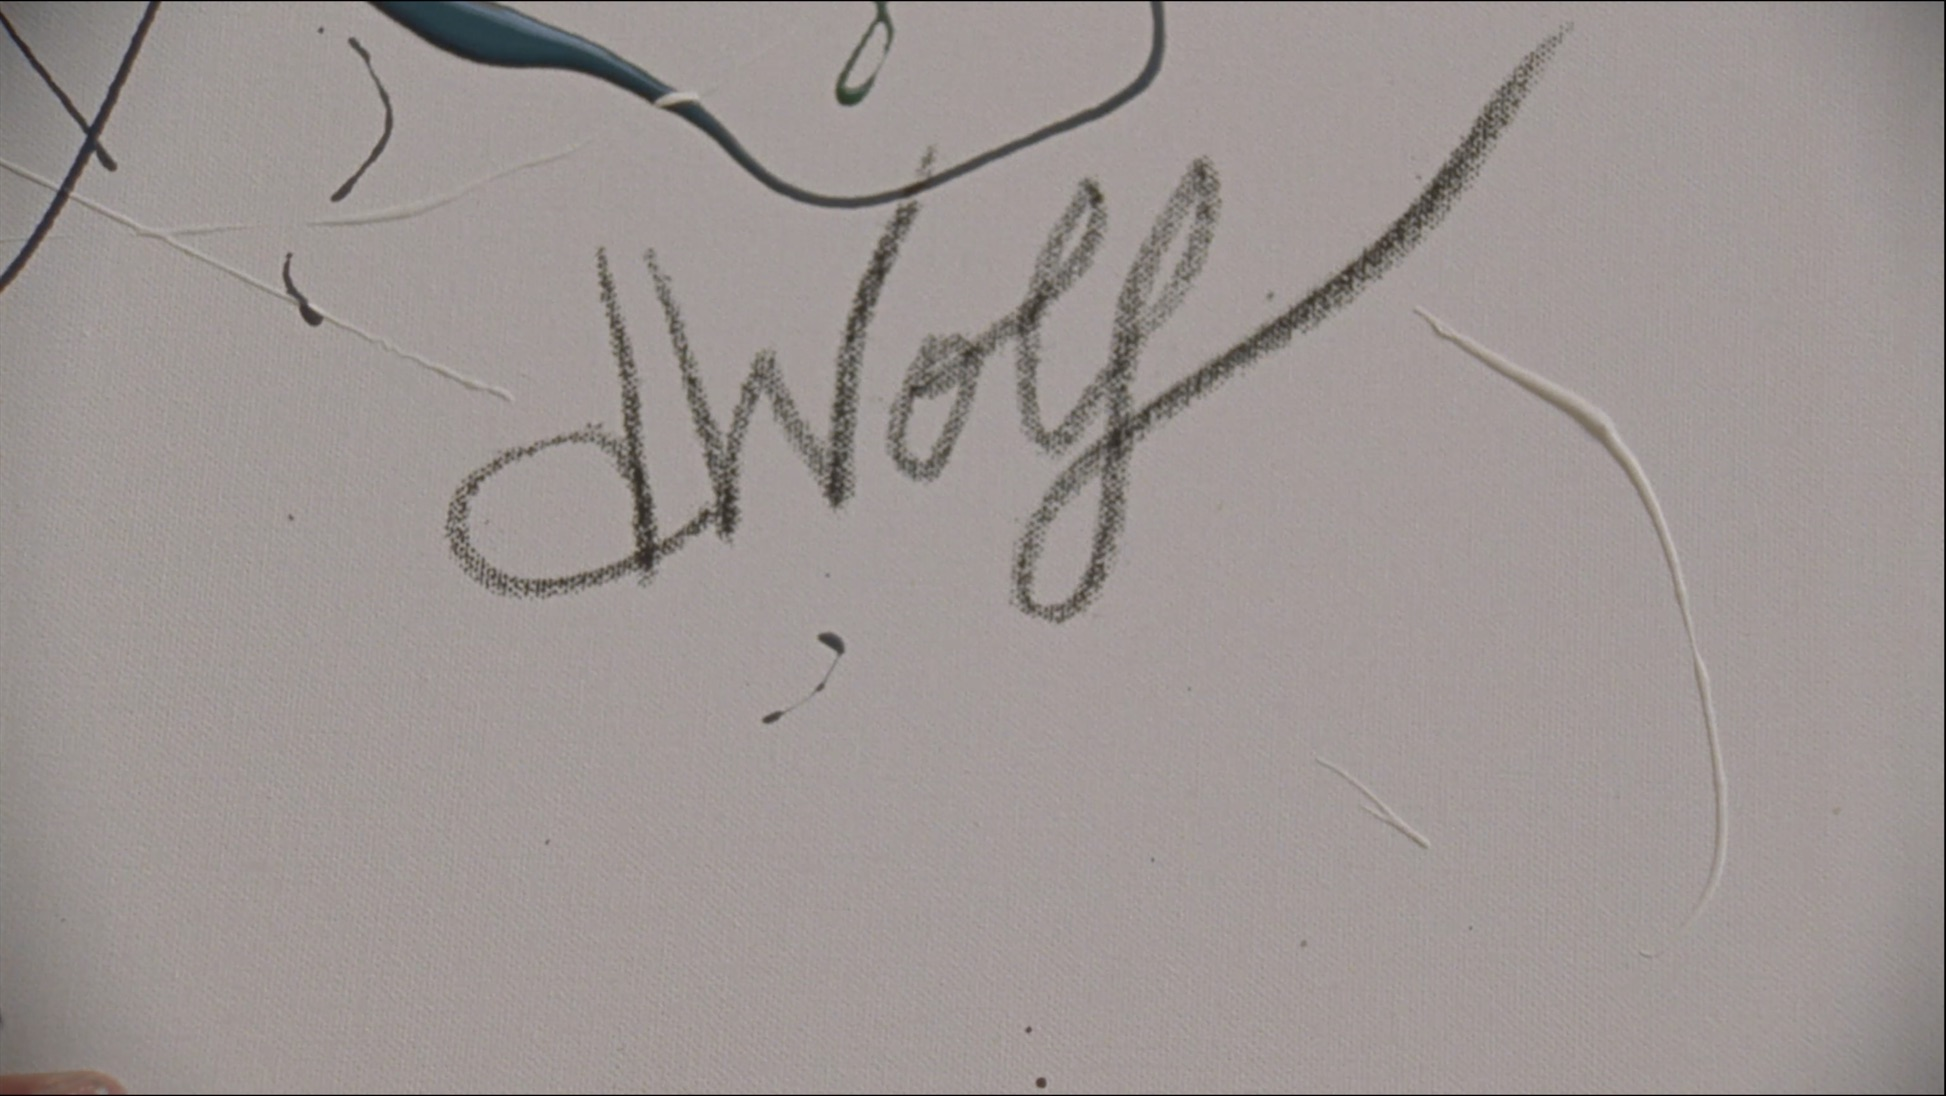 This is the title card from the film WOLF.